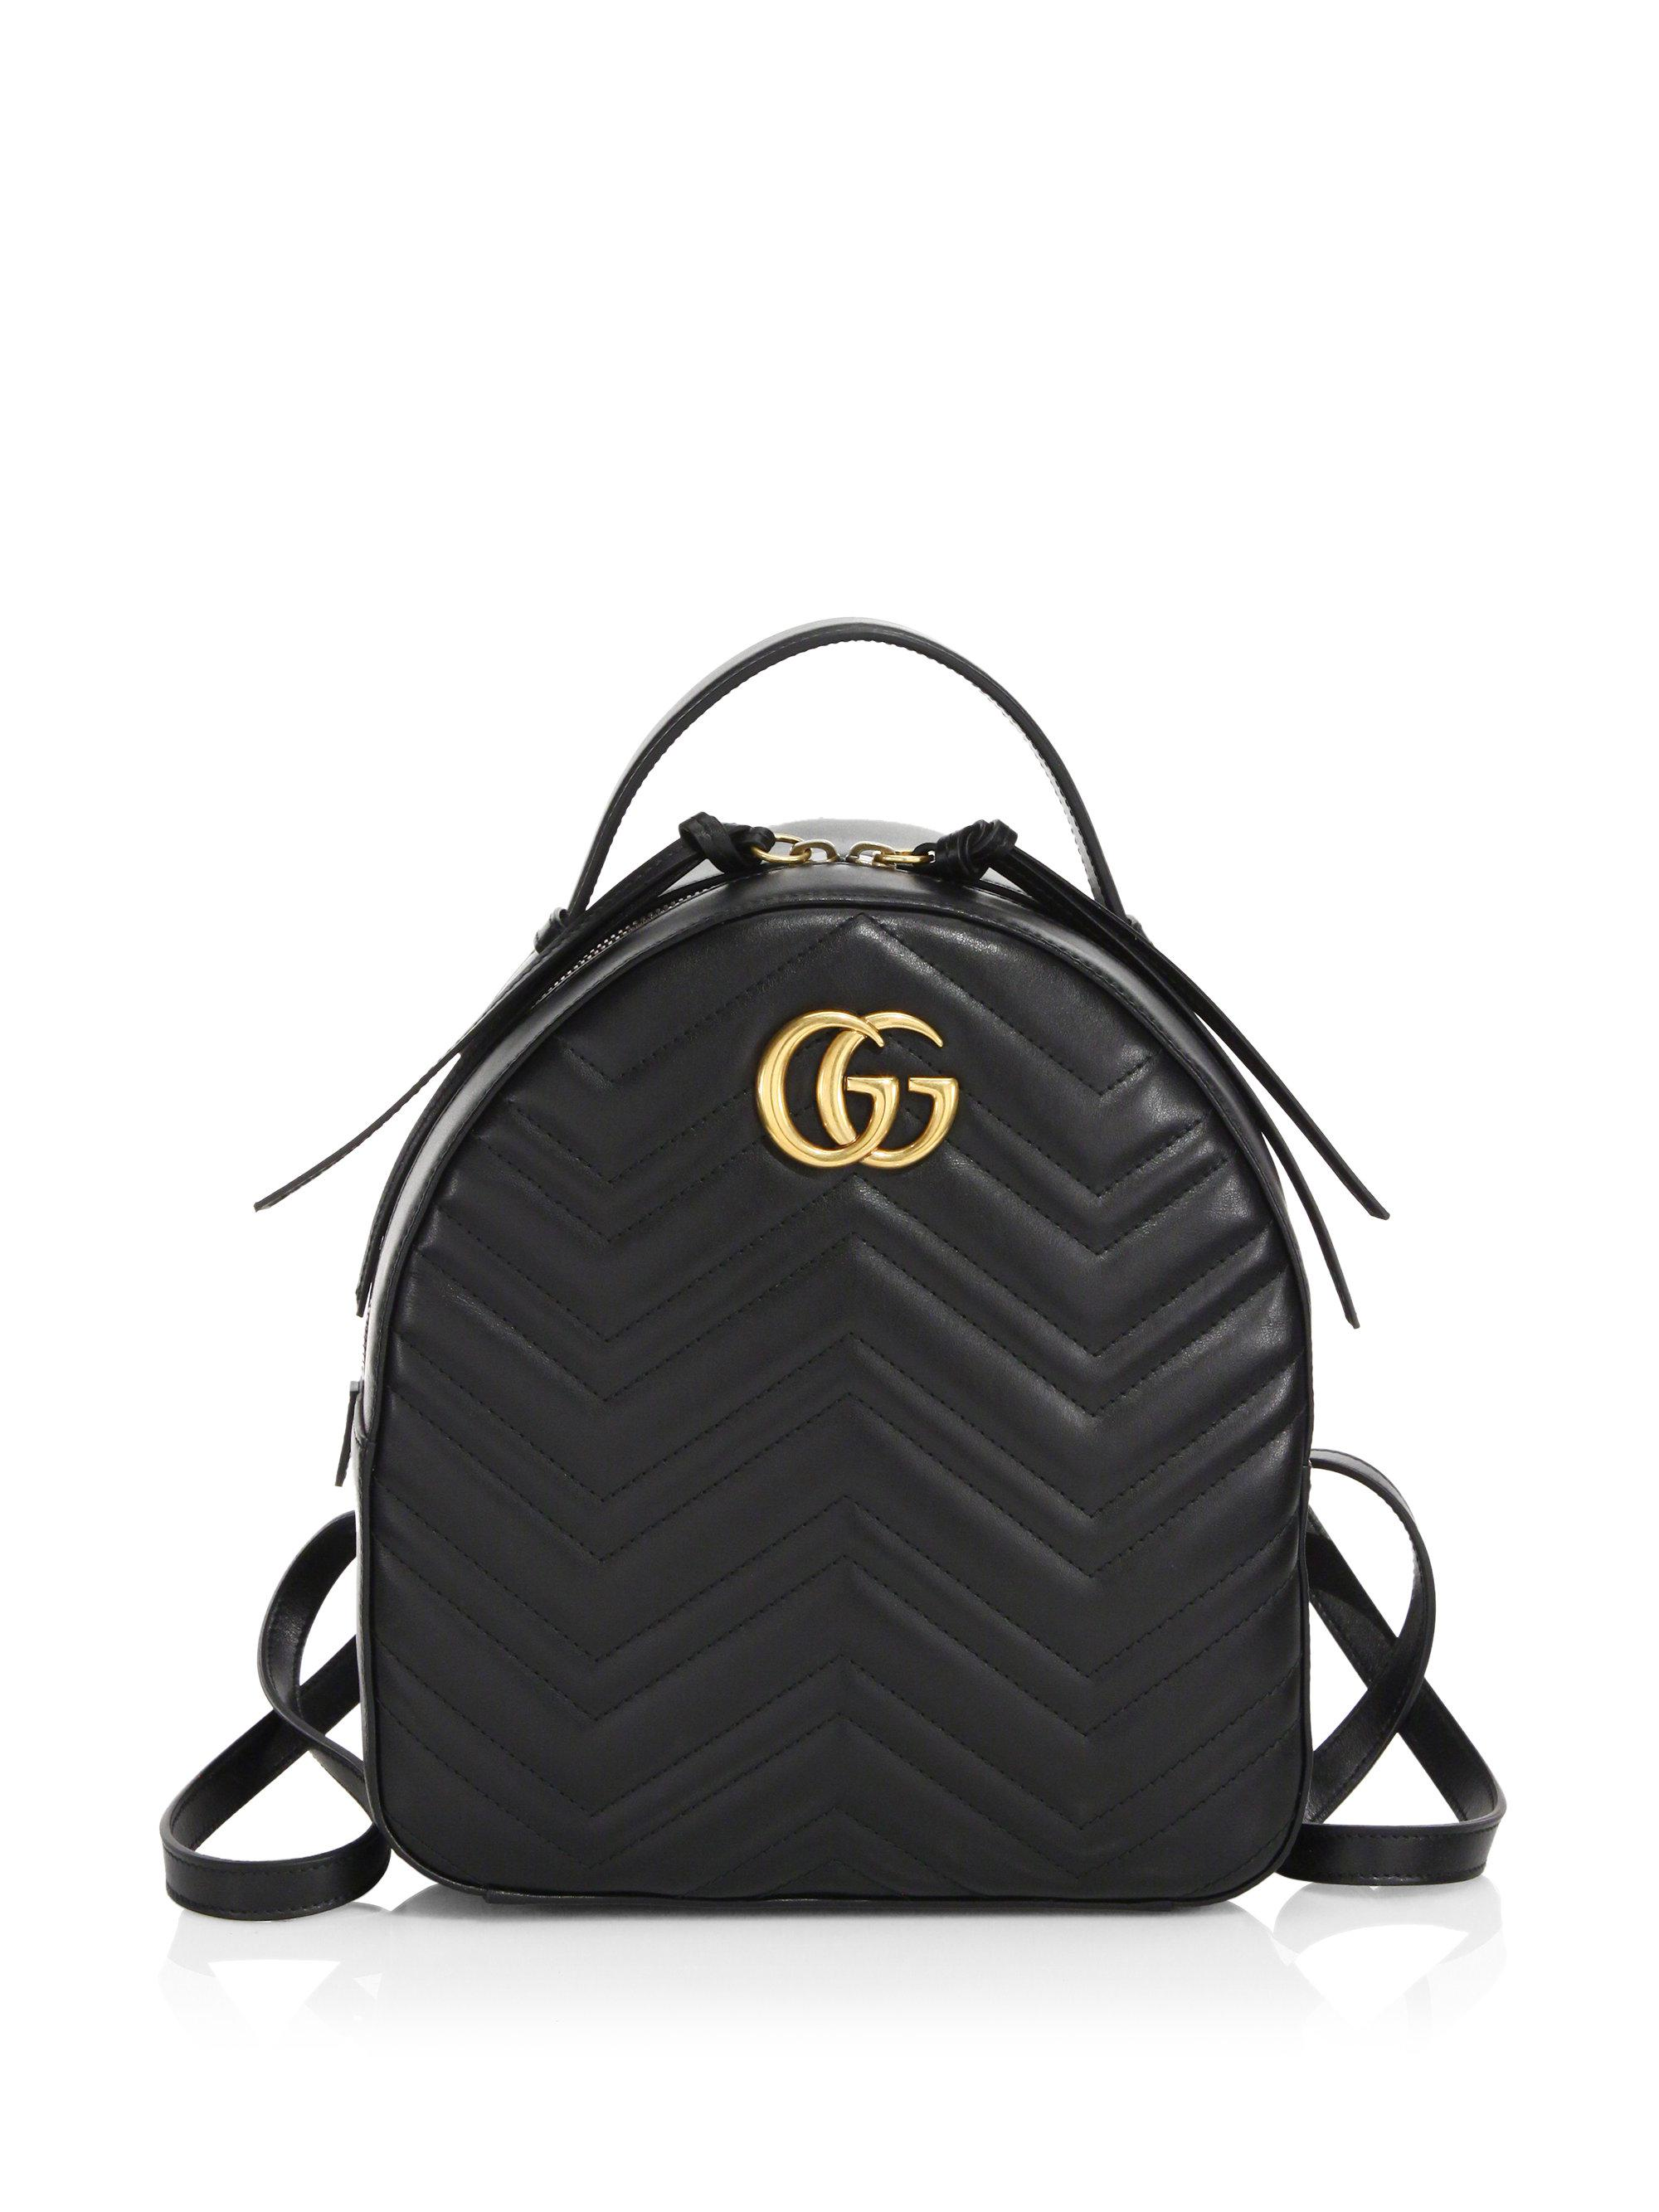 d7114592262 Gucci GG Marmont Chevron Quilted Leather Mini Backpack in Black - Lyst